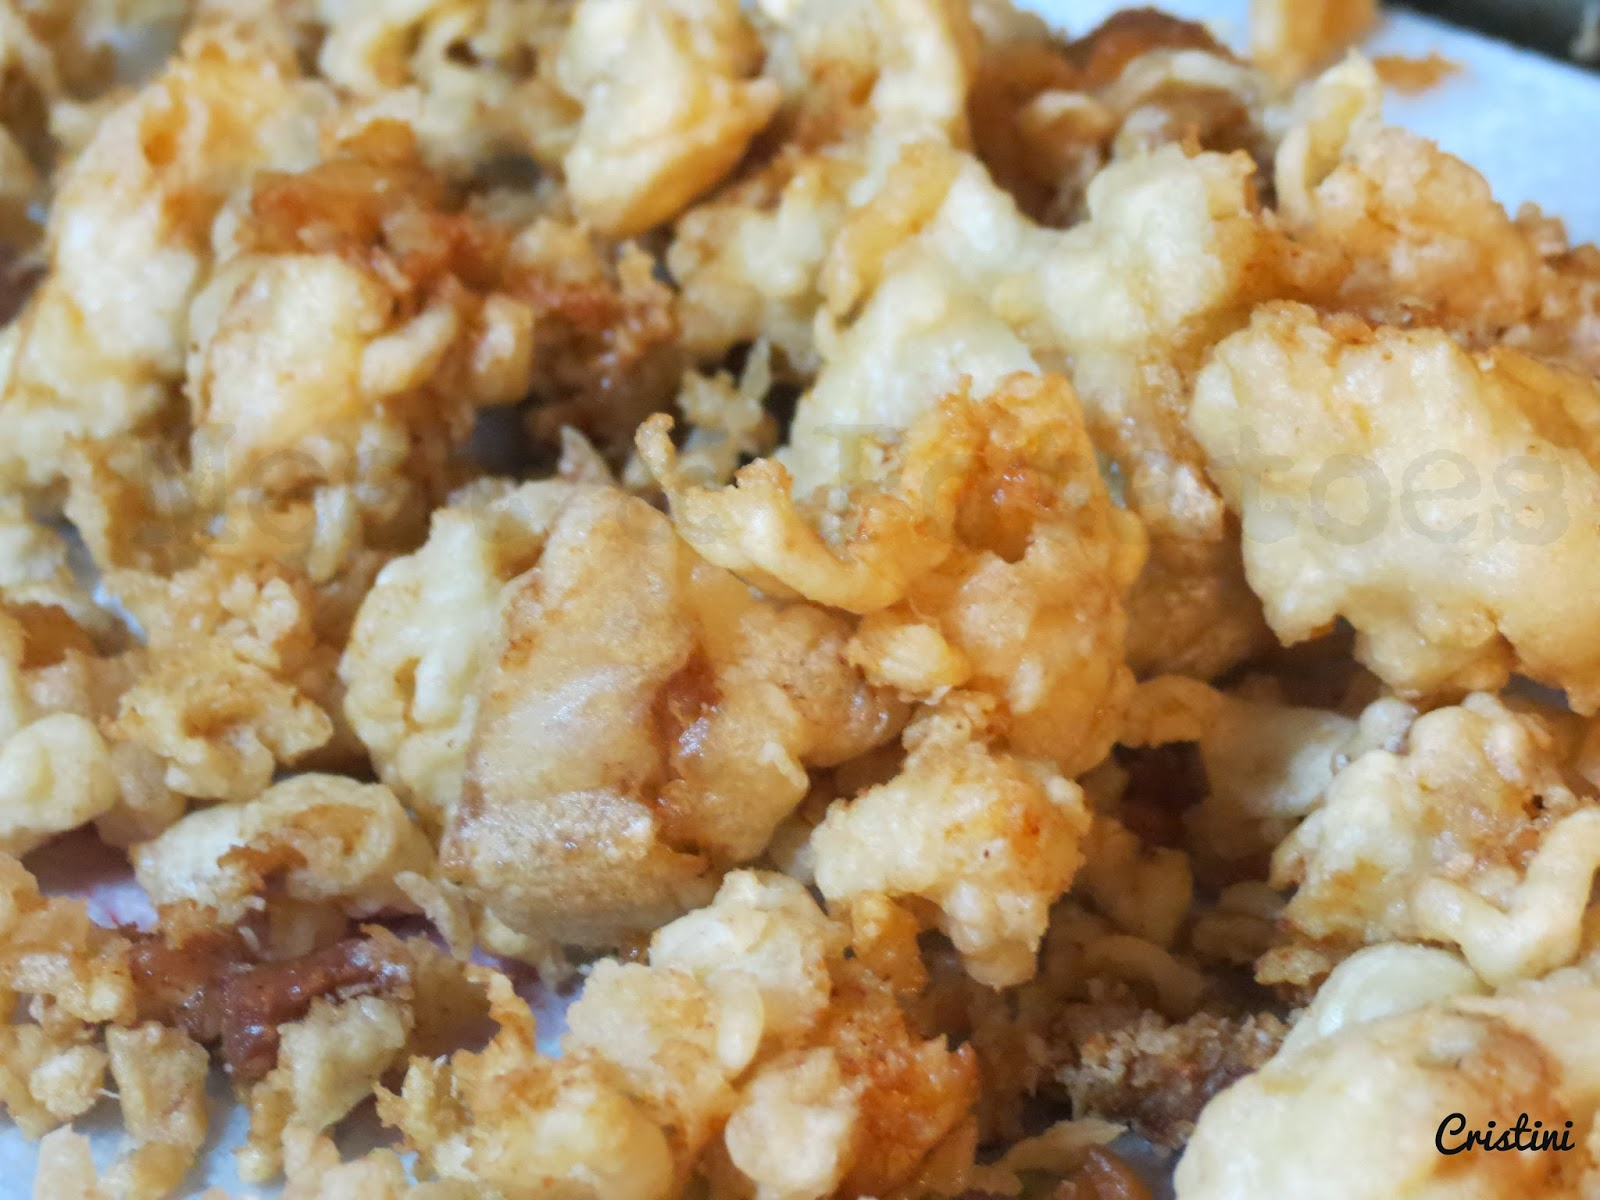 Meat & Potatoes, Recipes and More!: Easy Tempura Batter